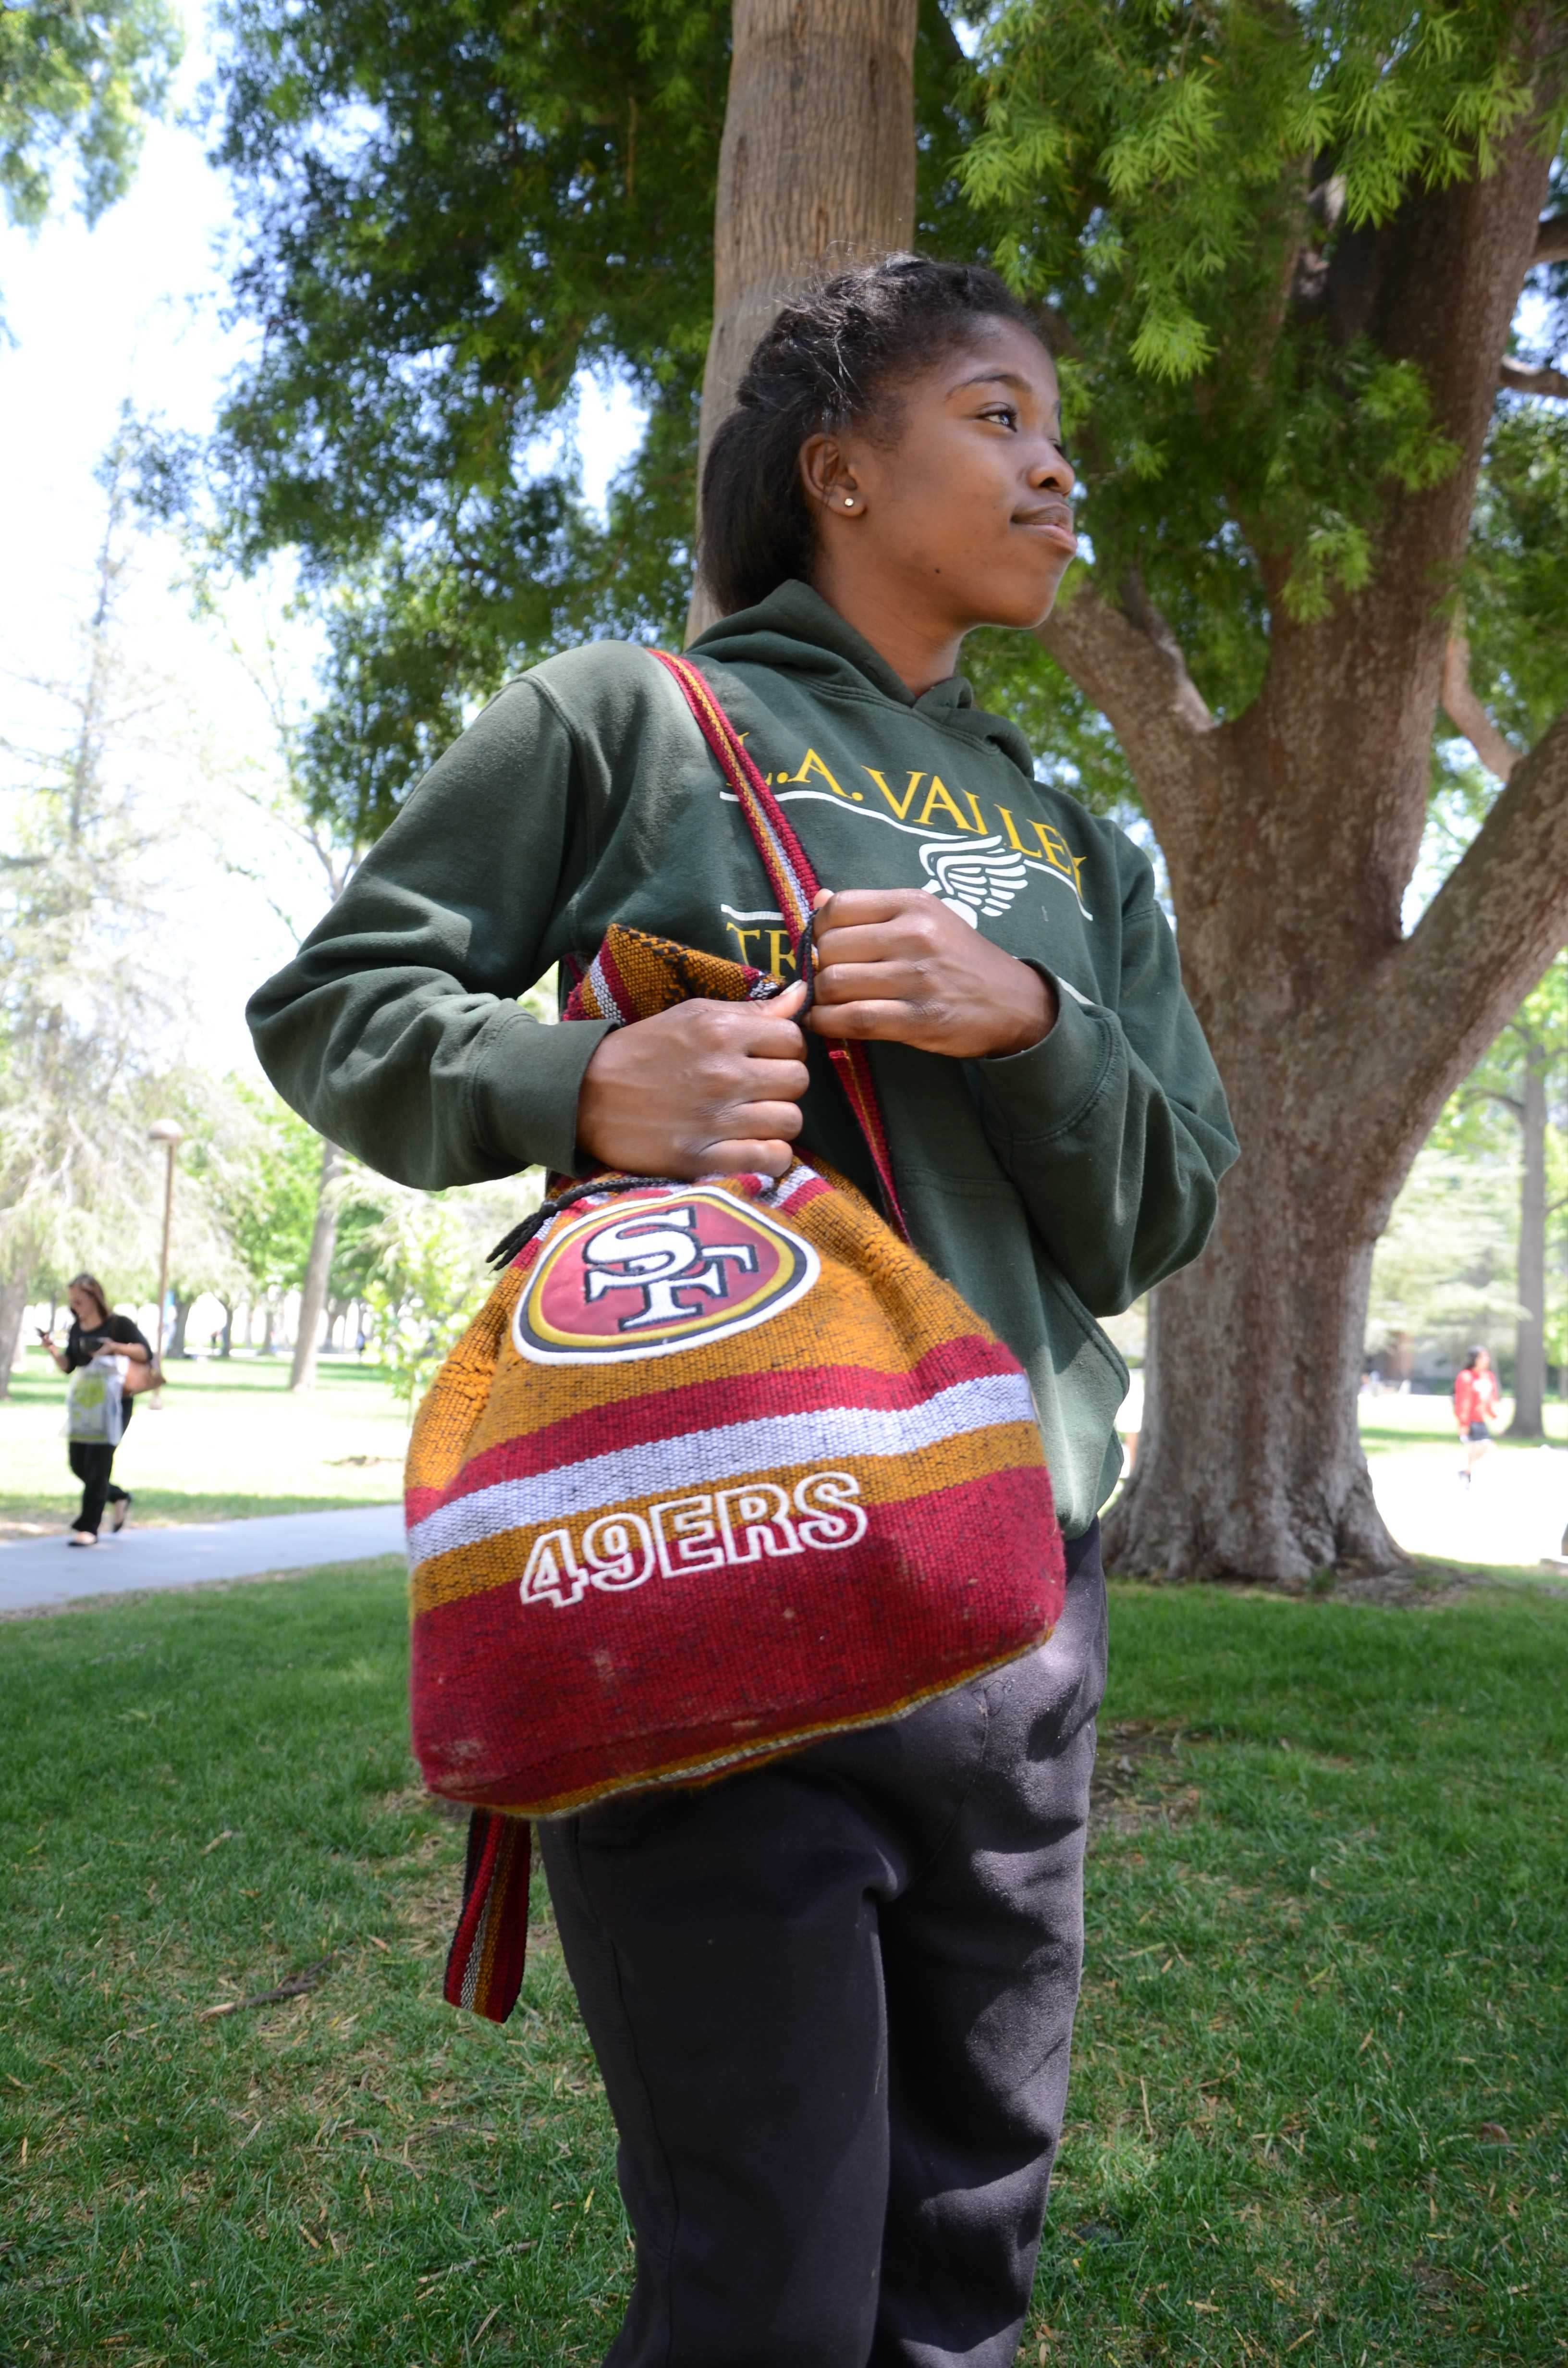 Upon+her+trip+to+Ensenada%2C+Mexico%2C+junior+kinesiology+major+Rhonda+Baker+stumbled+upon+a+shop+selling+bags+sporting+NFL+logos.+Baker+chose+the+49ers+bag+because+%22it+looked+fly%21%22